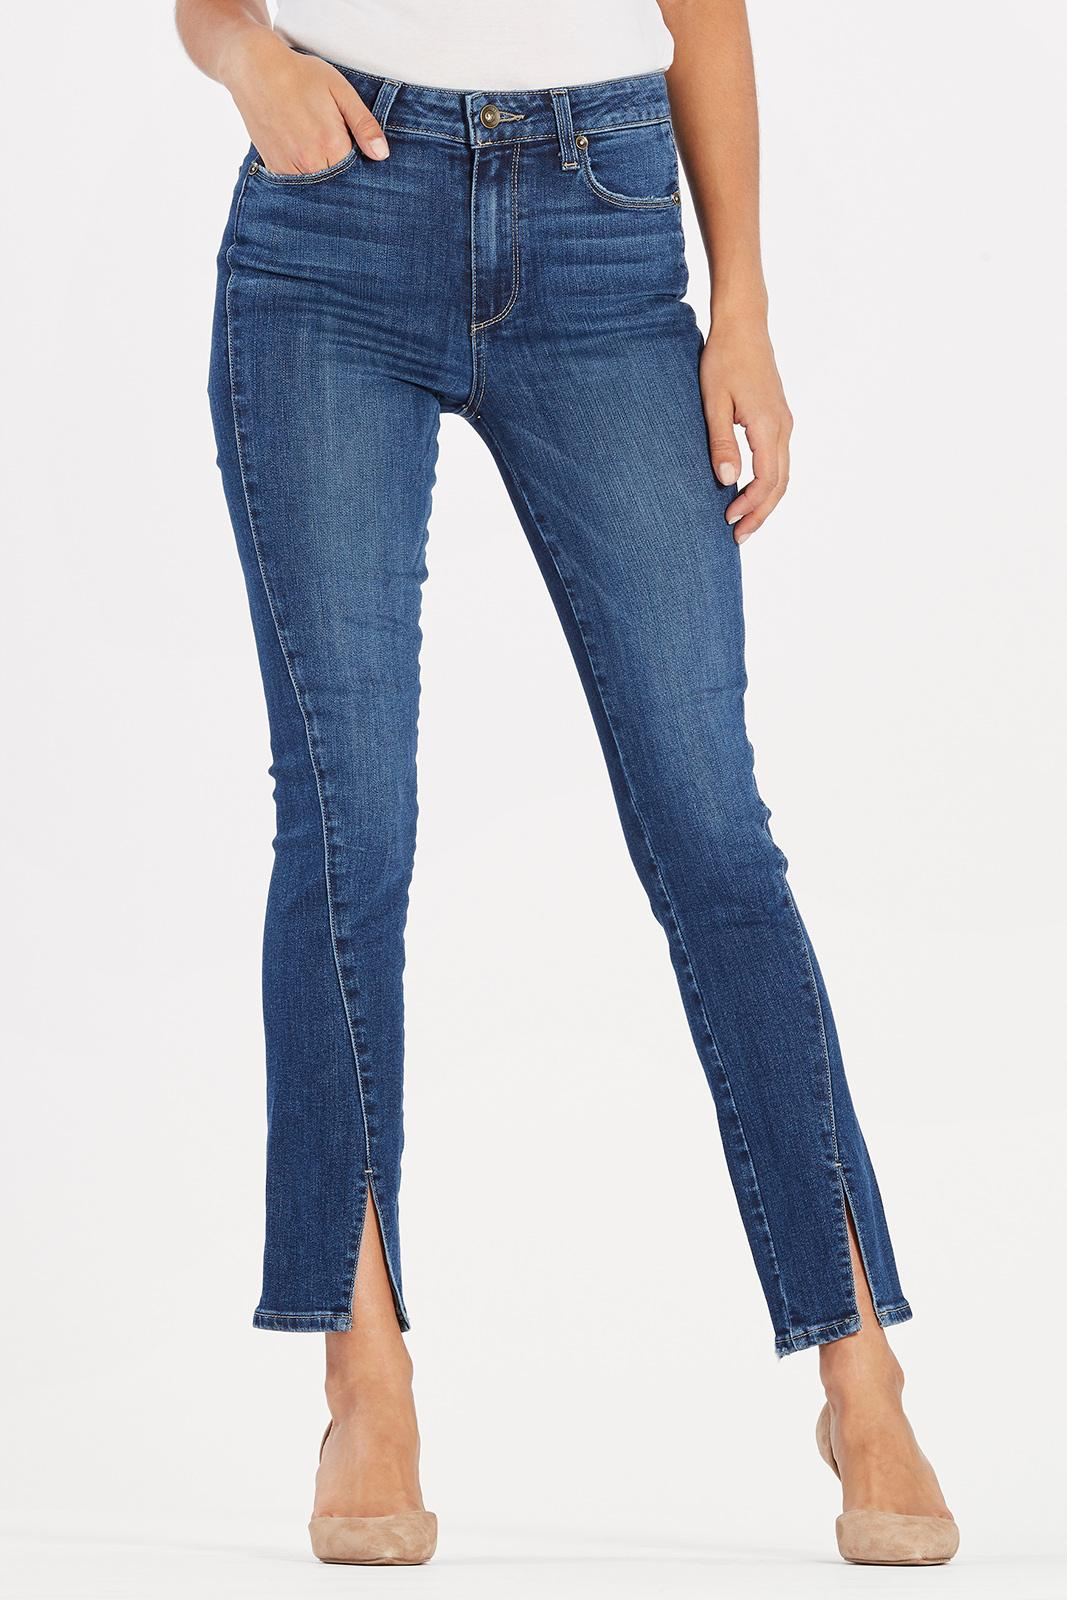 paige denim julia twisted seams item # 3720984-4710 dholvsf